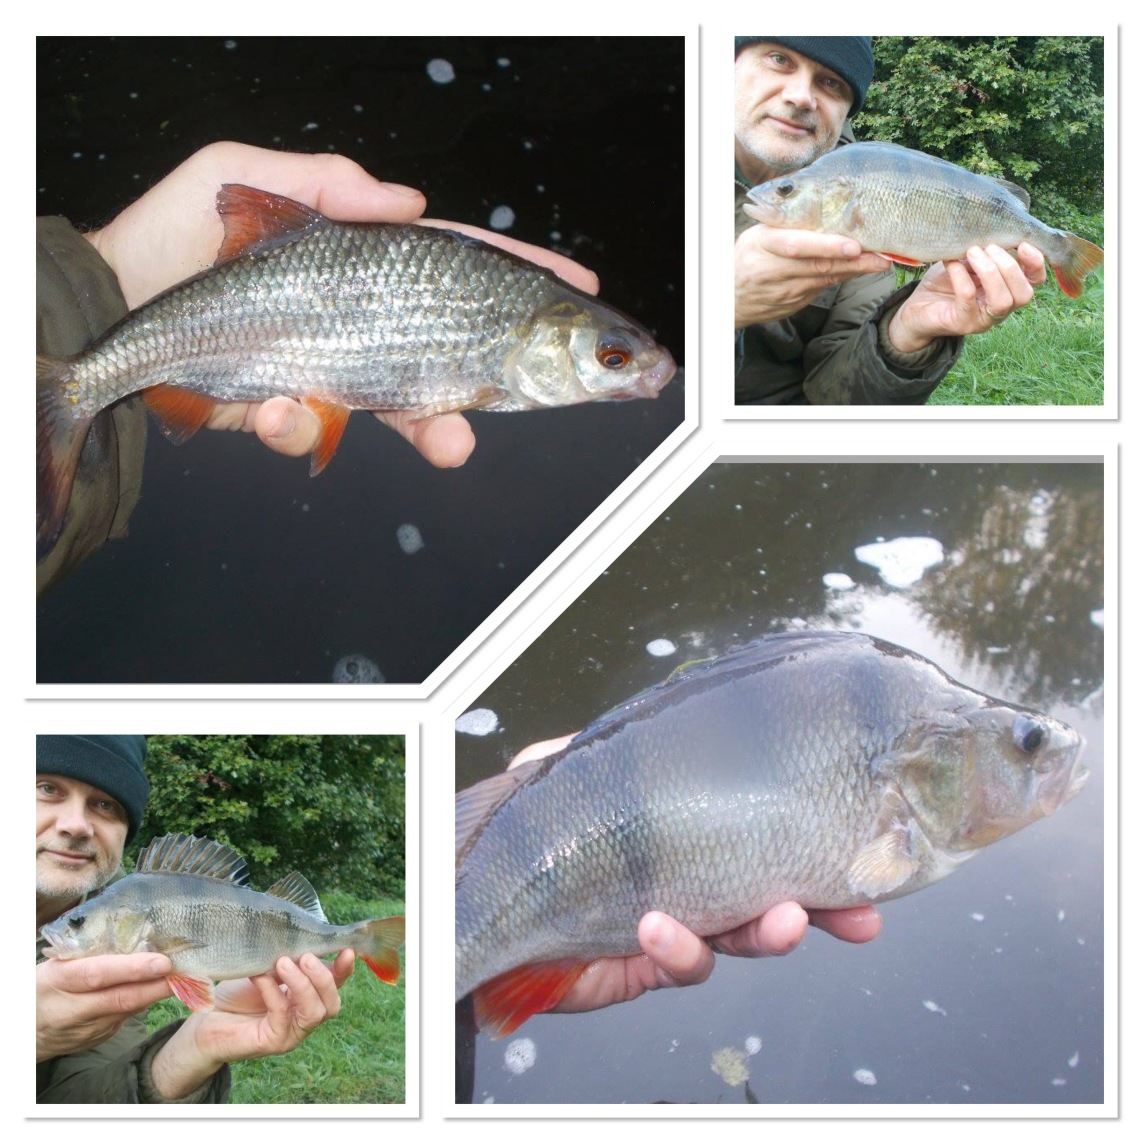 I had some nice fish from the canal this week